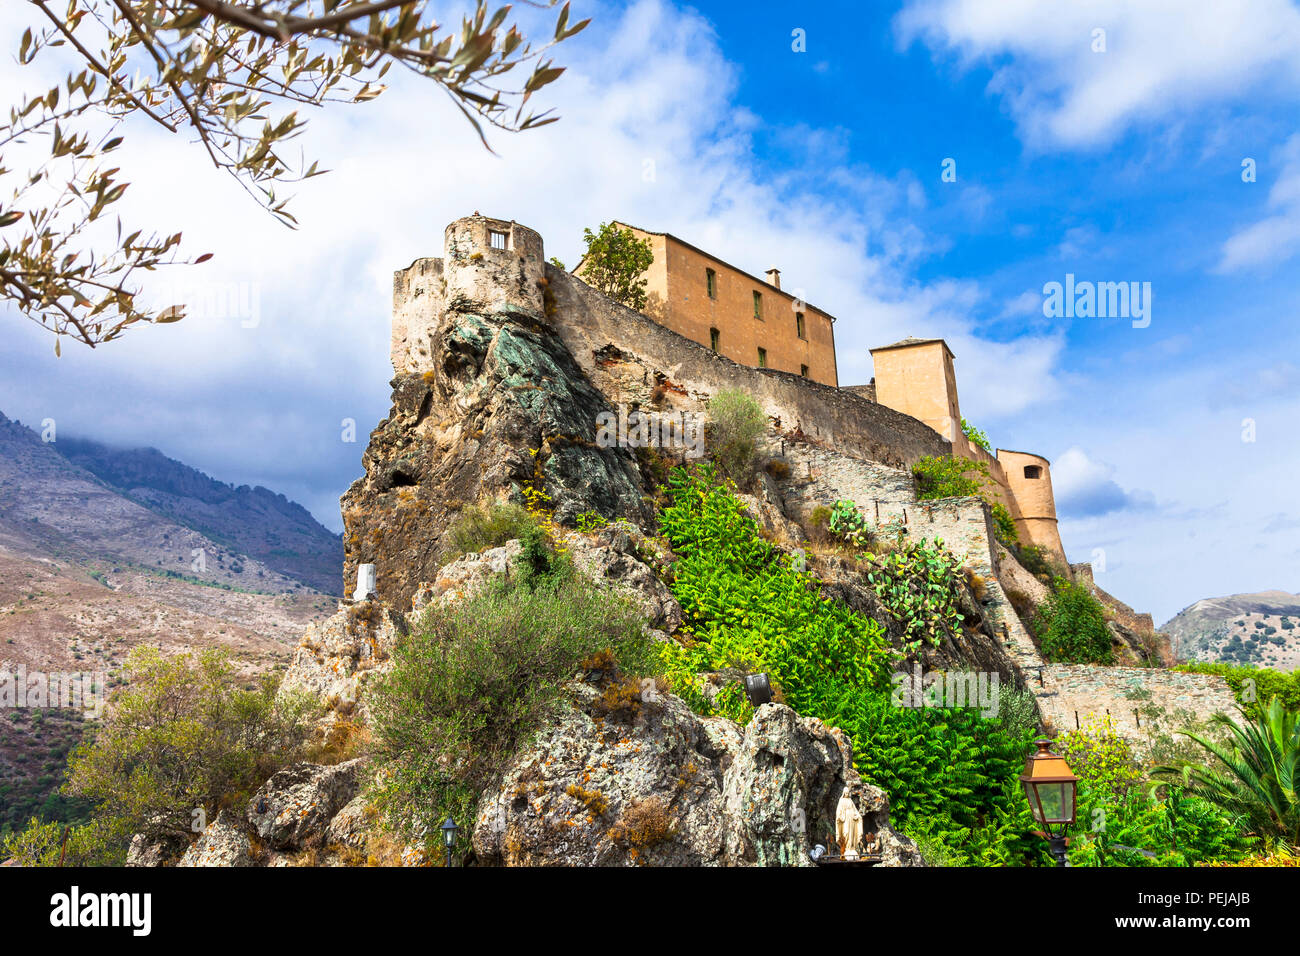 Impressionnant château à Corte village,Corse,France. Photo Stock